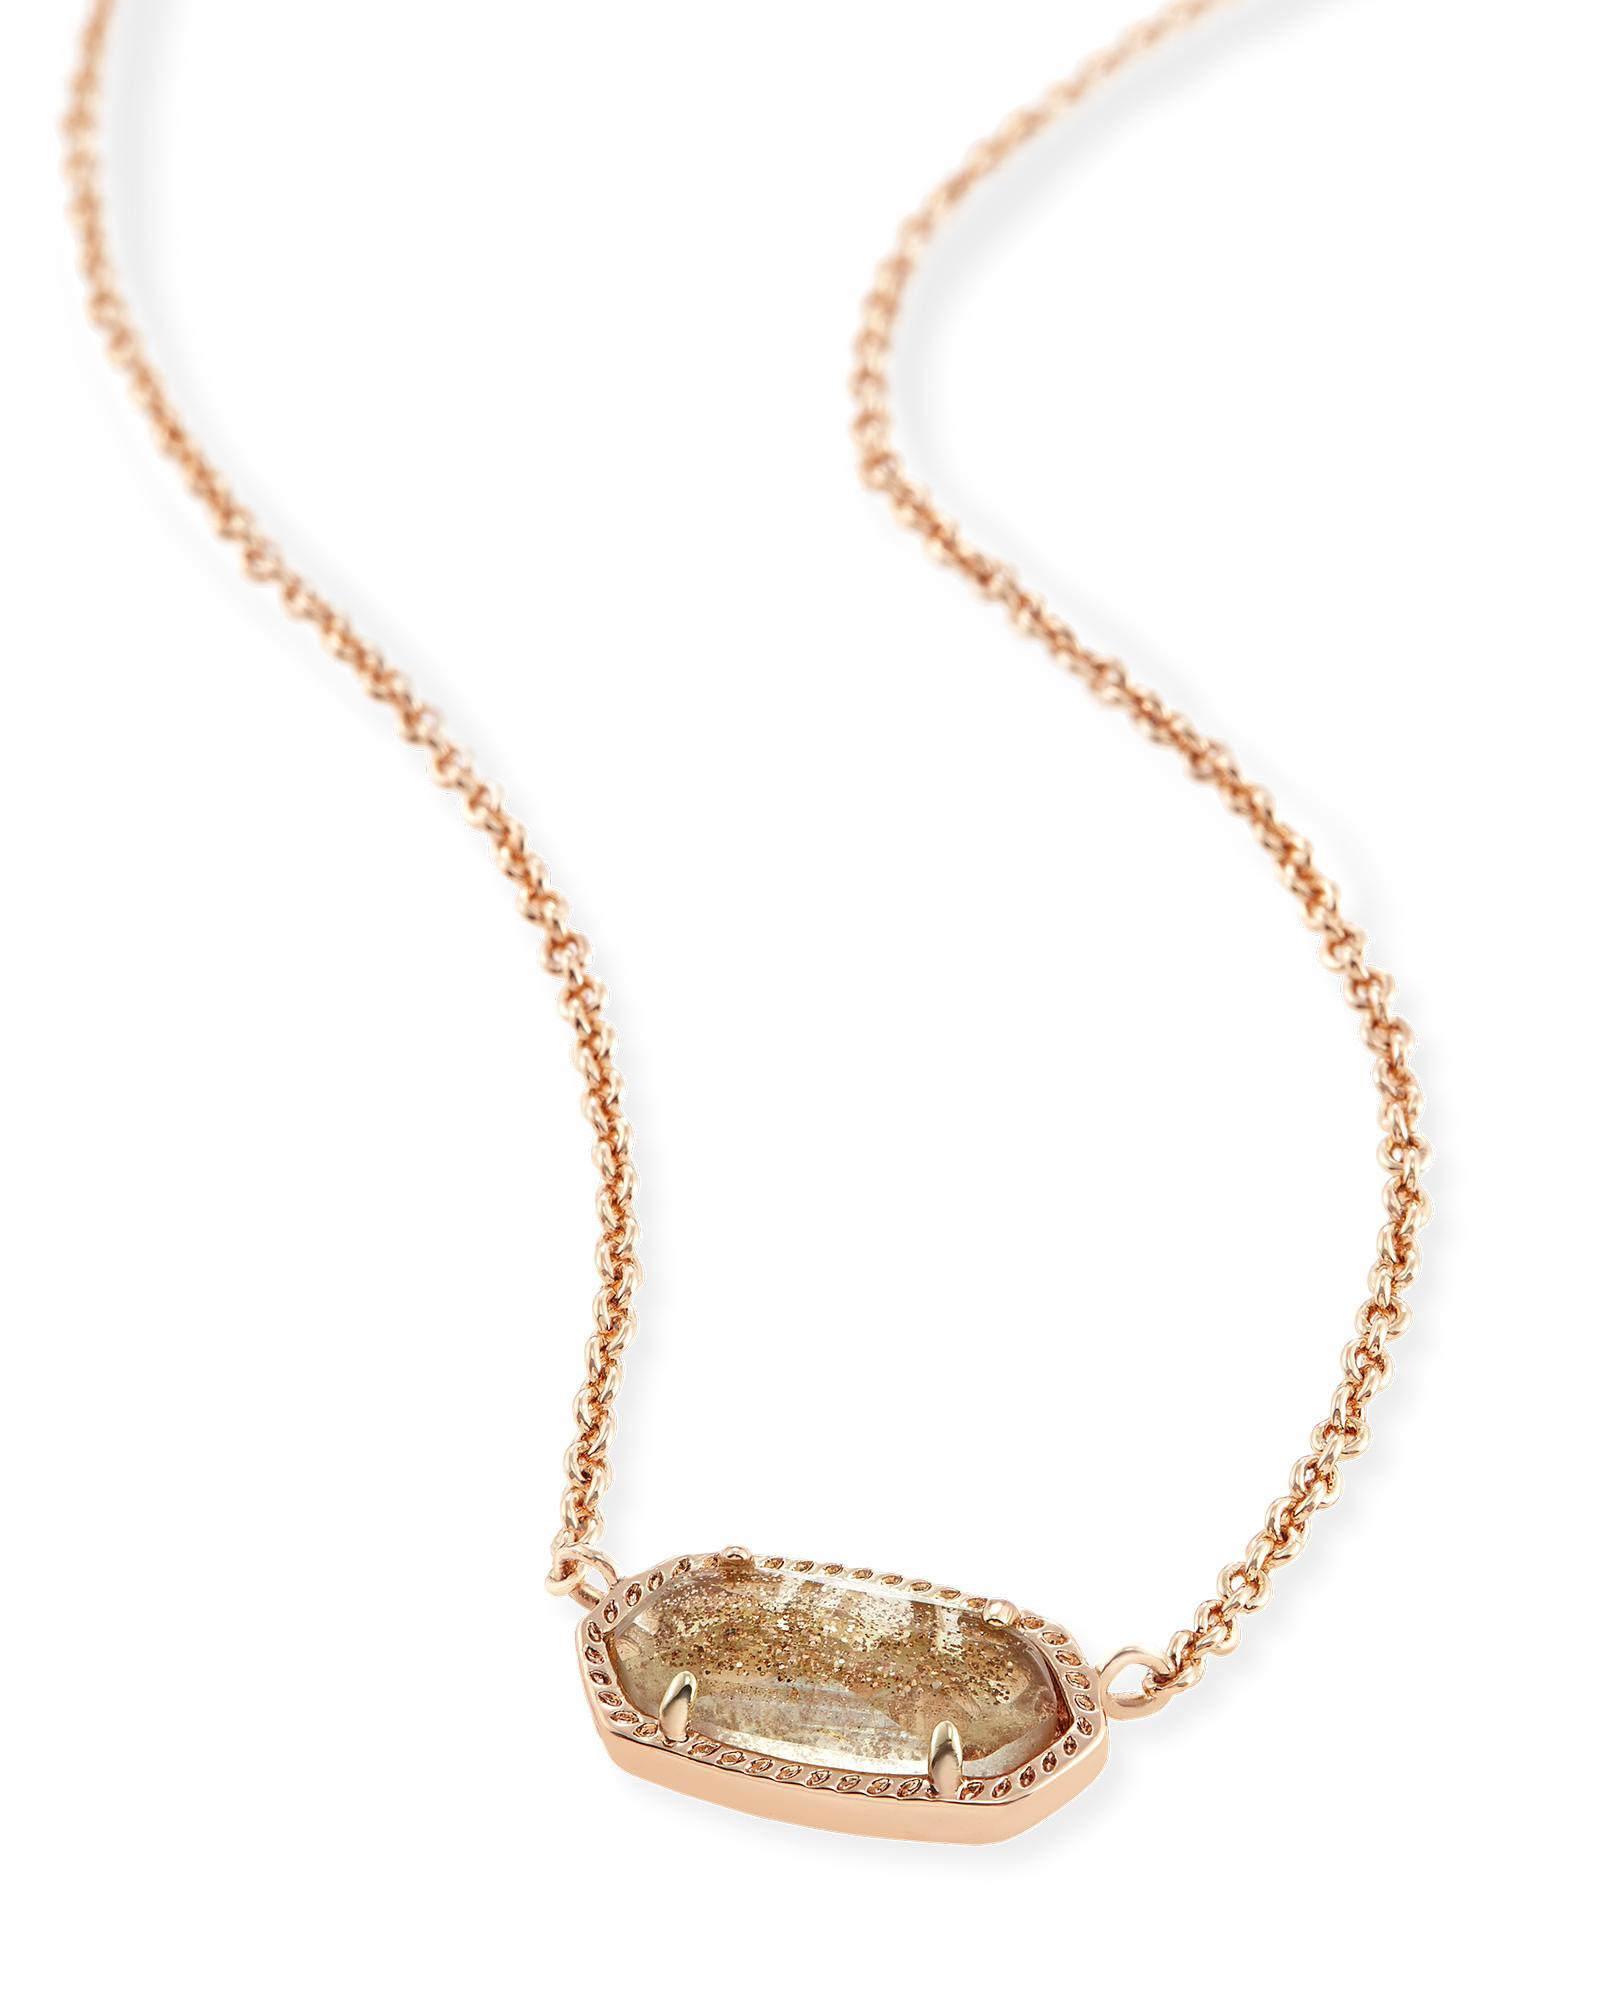 Elisa rose gold pendant necklace in gold dust kendra scott elisa pendant necklace in gold dusted glass aloadofball Choice Image